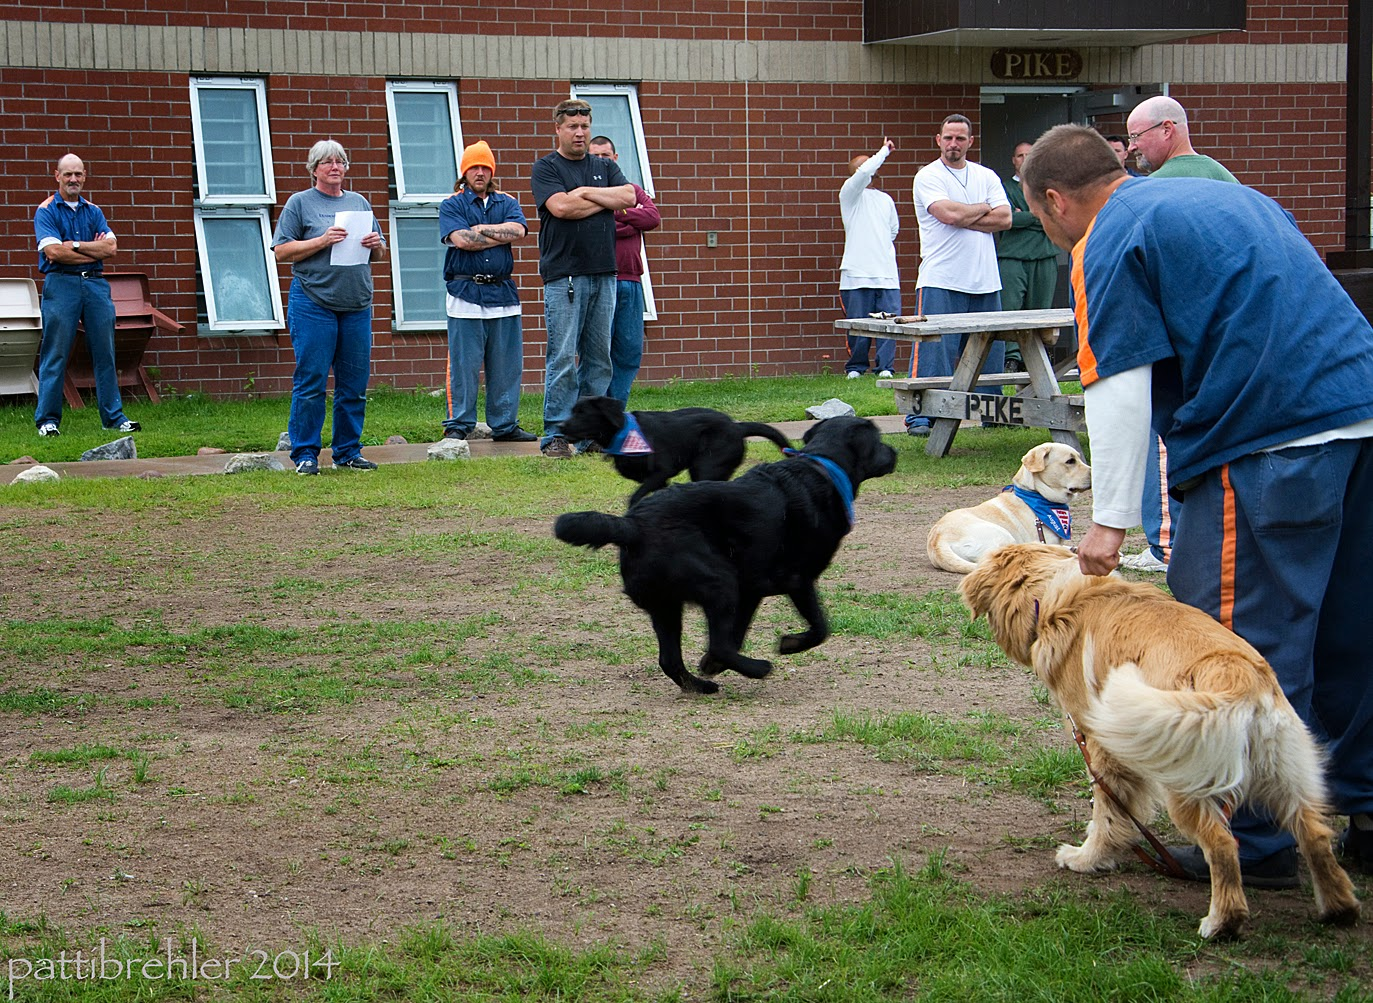 There are several men and the woman standing in the background watching as two black labs run past each other from opposite directions. A goldne retriever is standing up on the right side like he is trying to reach the running puppies, but a man dressed in the blue prison uniforms is holding his collar. A yellow lab in the background is lying on the ground.